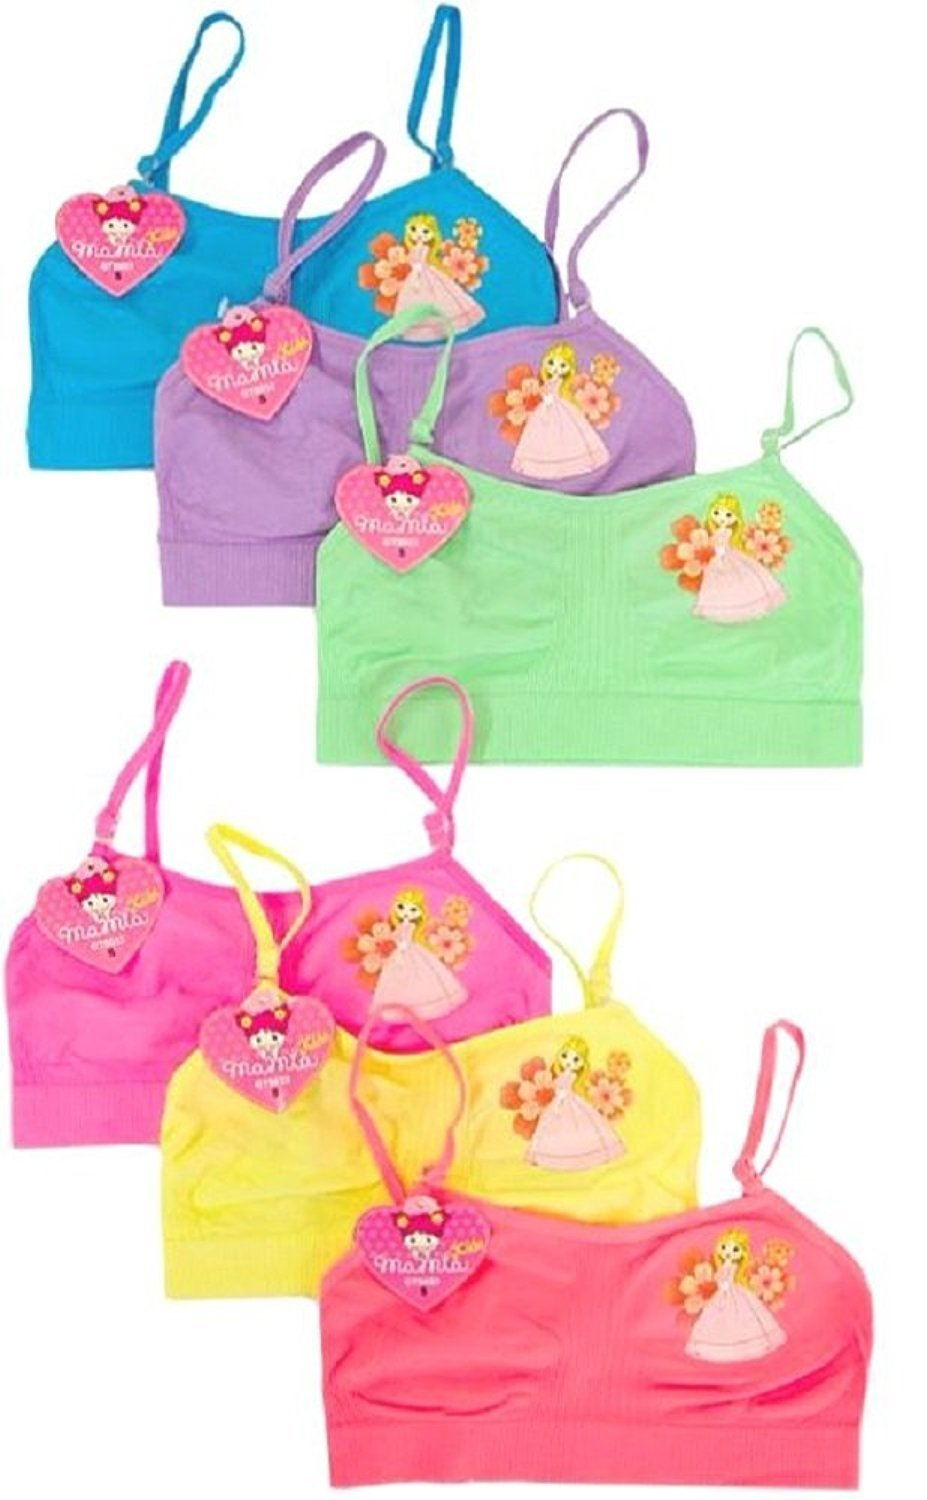 Tobeinstyle Girls Pack Of 6 Seamless Little Princess  Ebay-1244